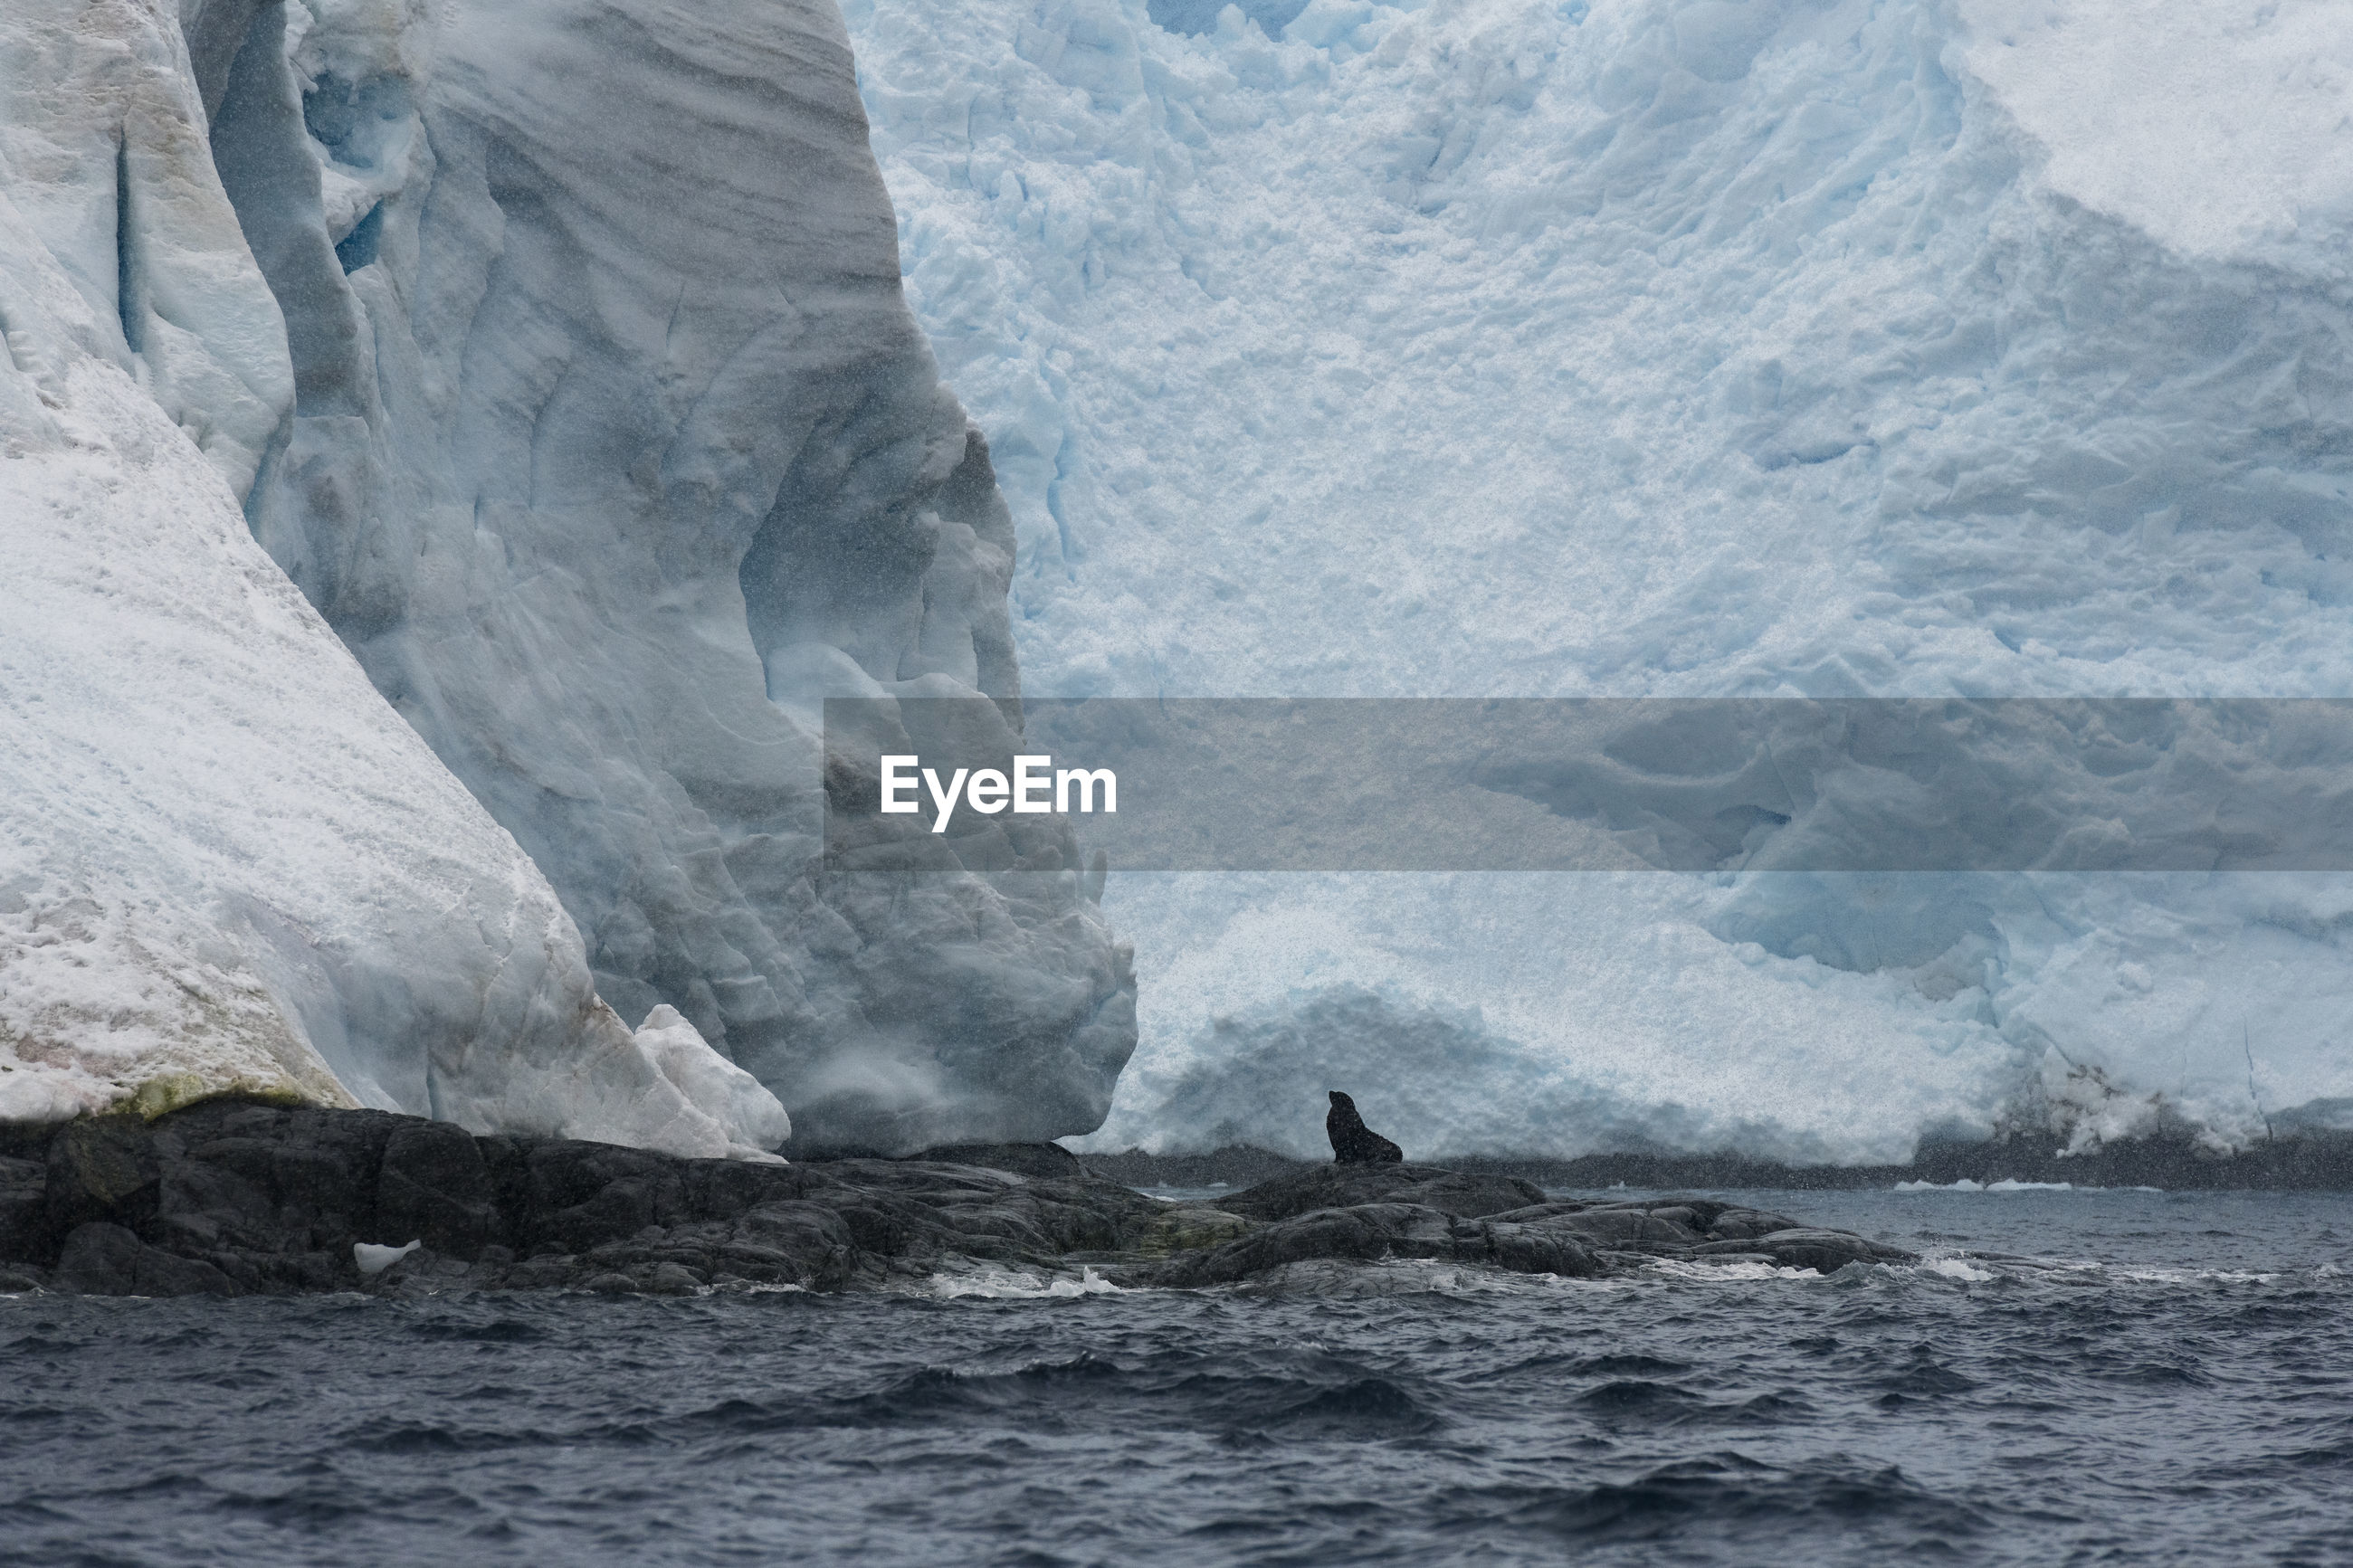 A fur seal sitting on a cliff under a glacier on brabant island in antarctica.